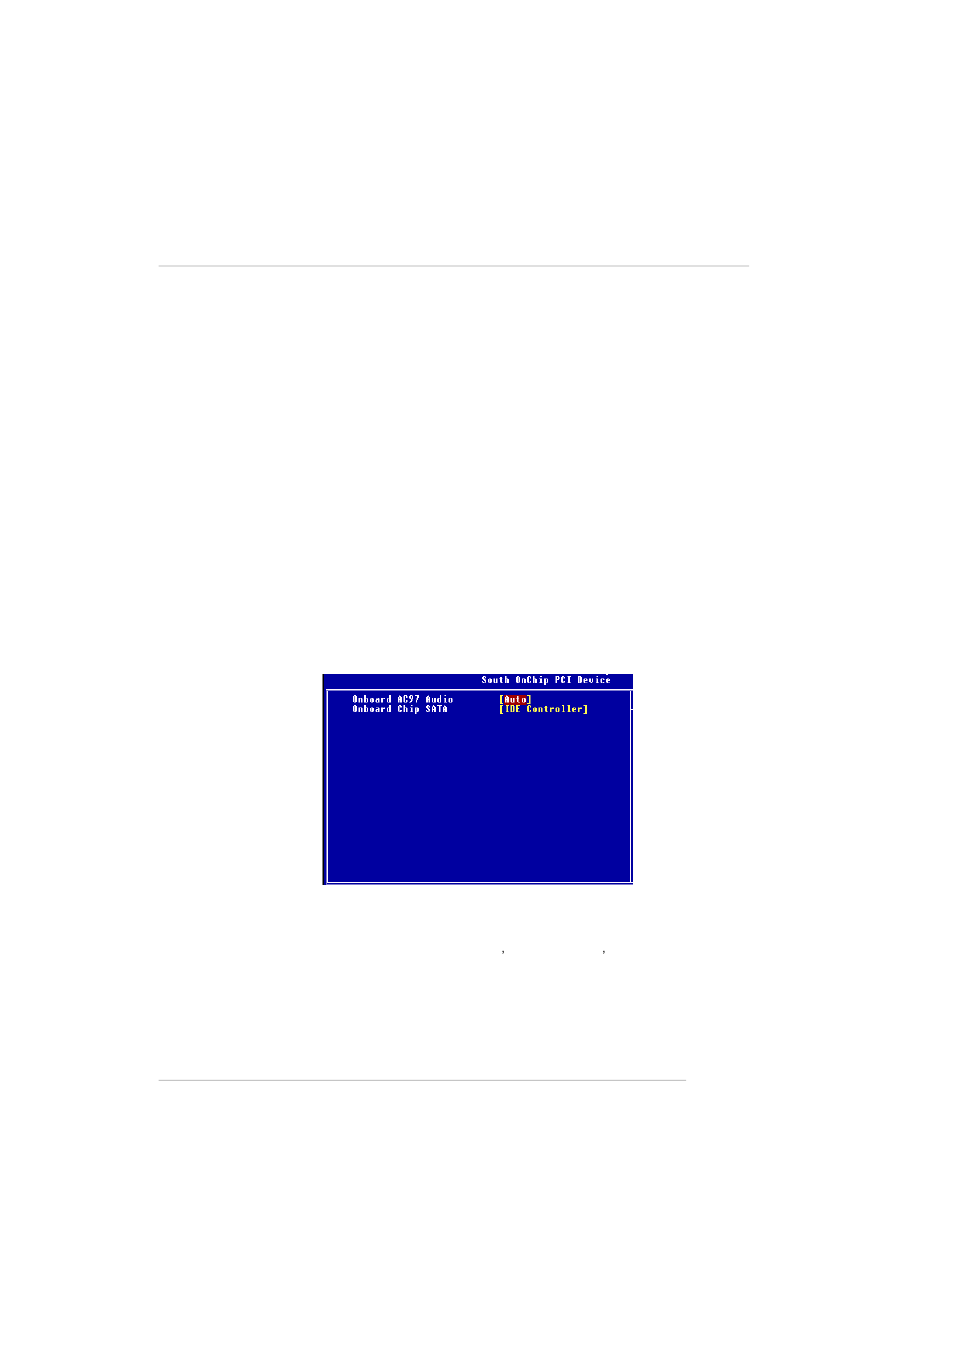 MSI RS482M2-IL/L User Manual | Page 50 / 136